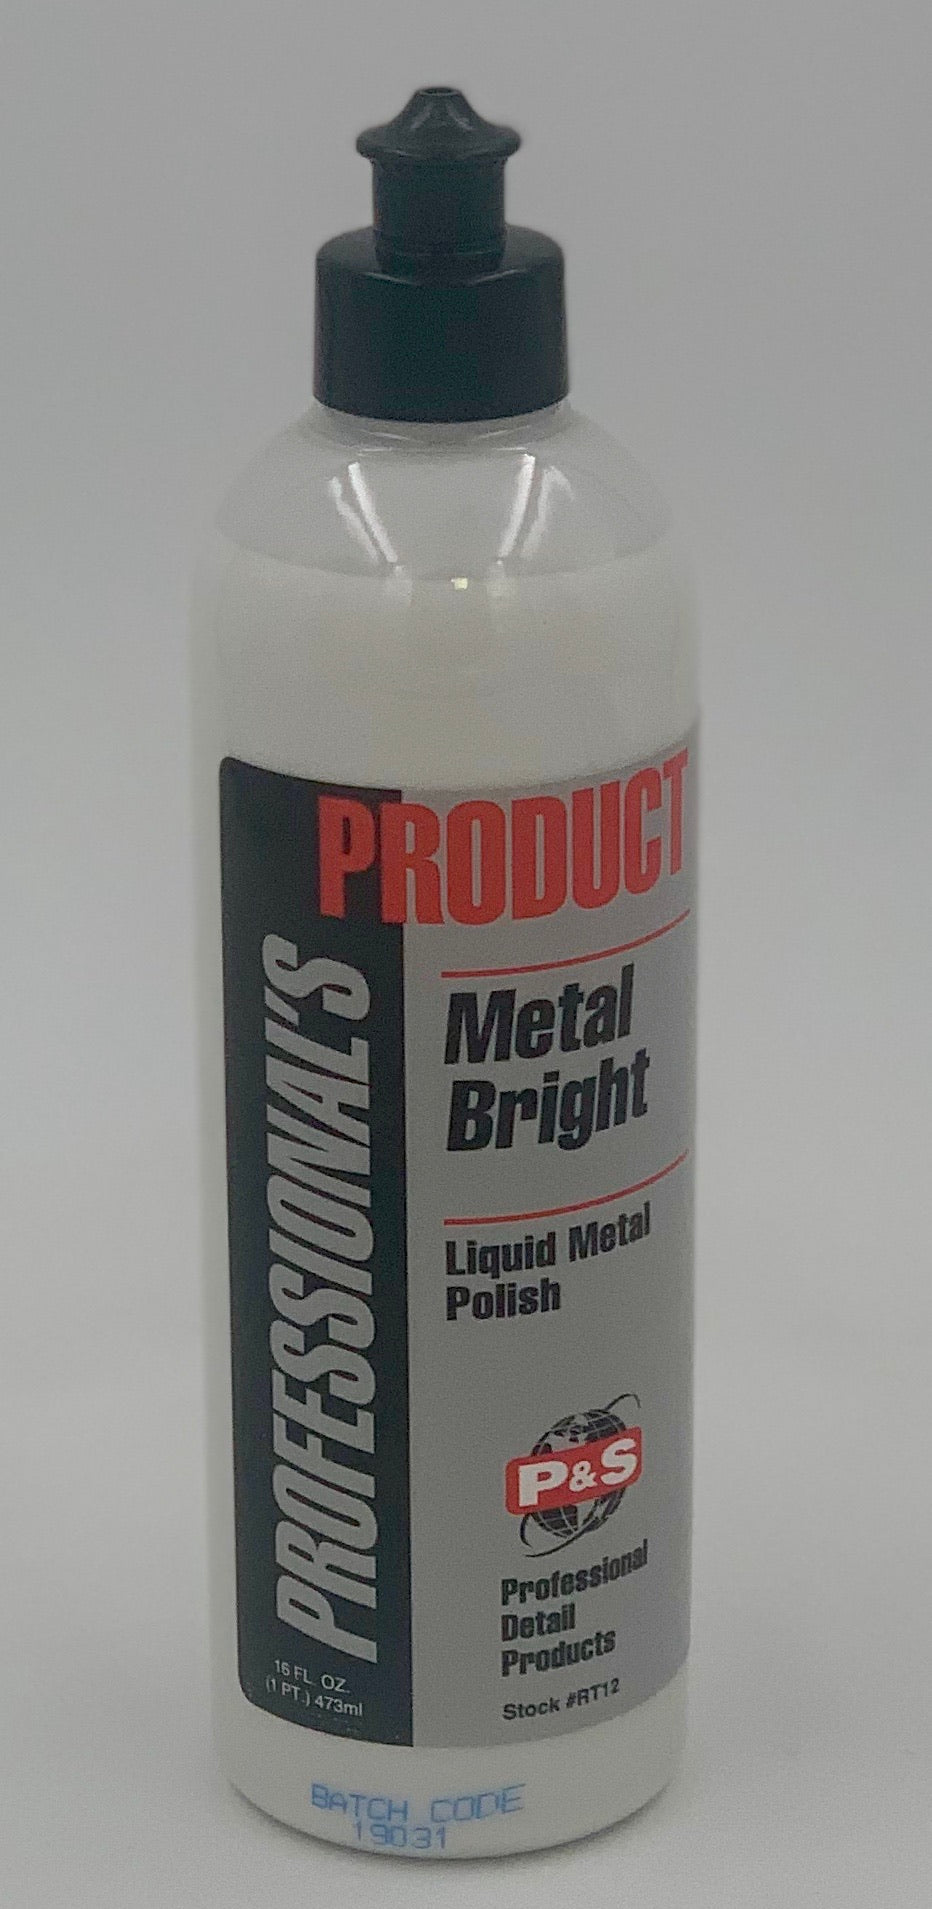 Metal Brite -Liquid Metal Polish 16oz